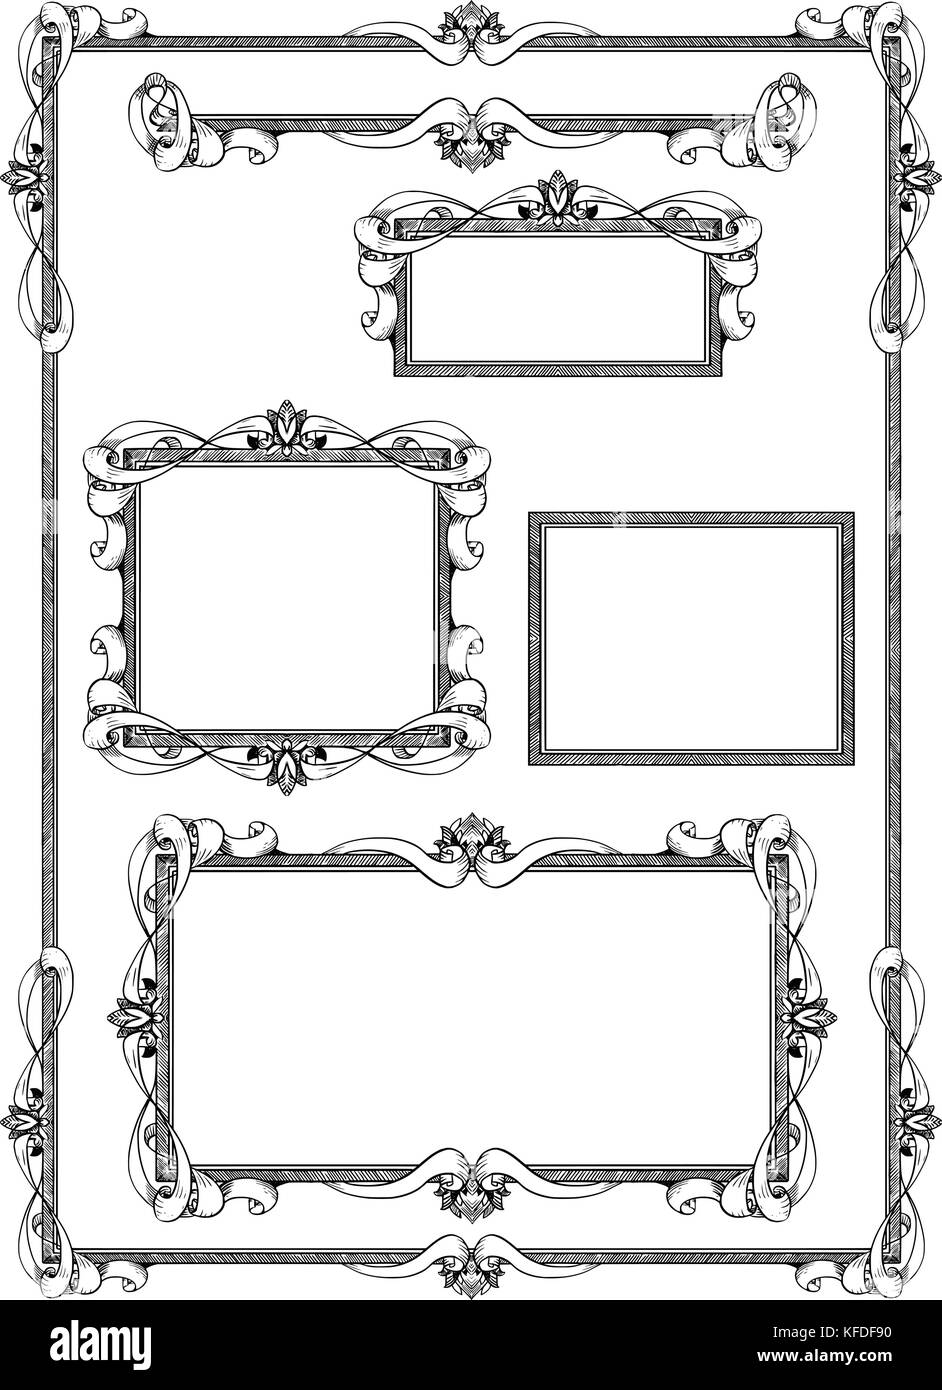 Set of various artistic ornamental frame label designs in same style ...